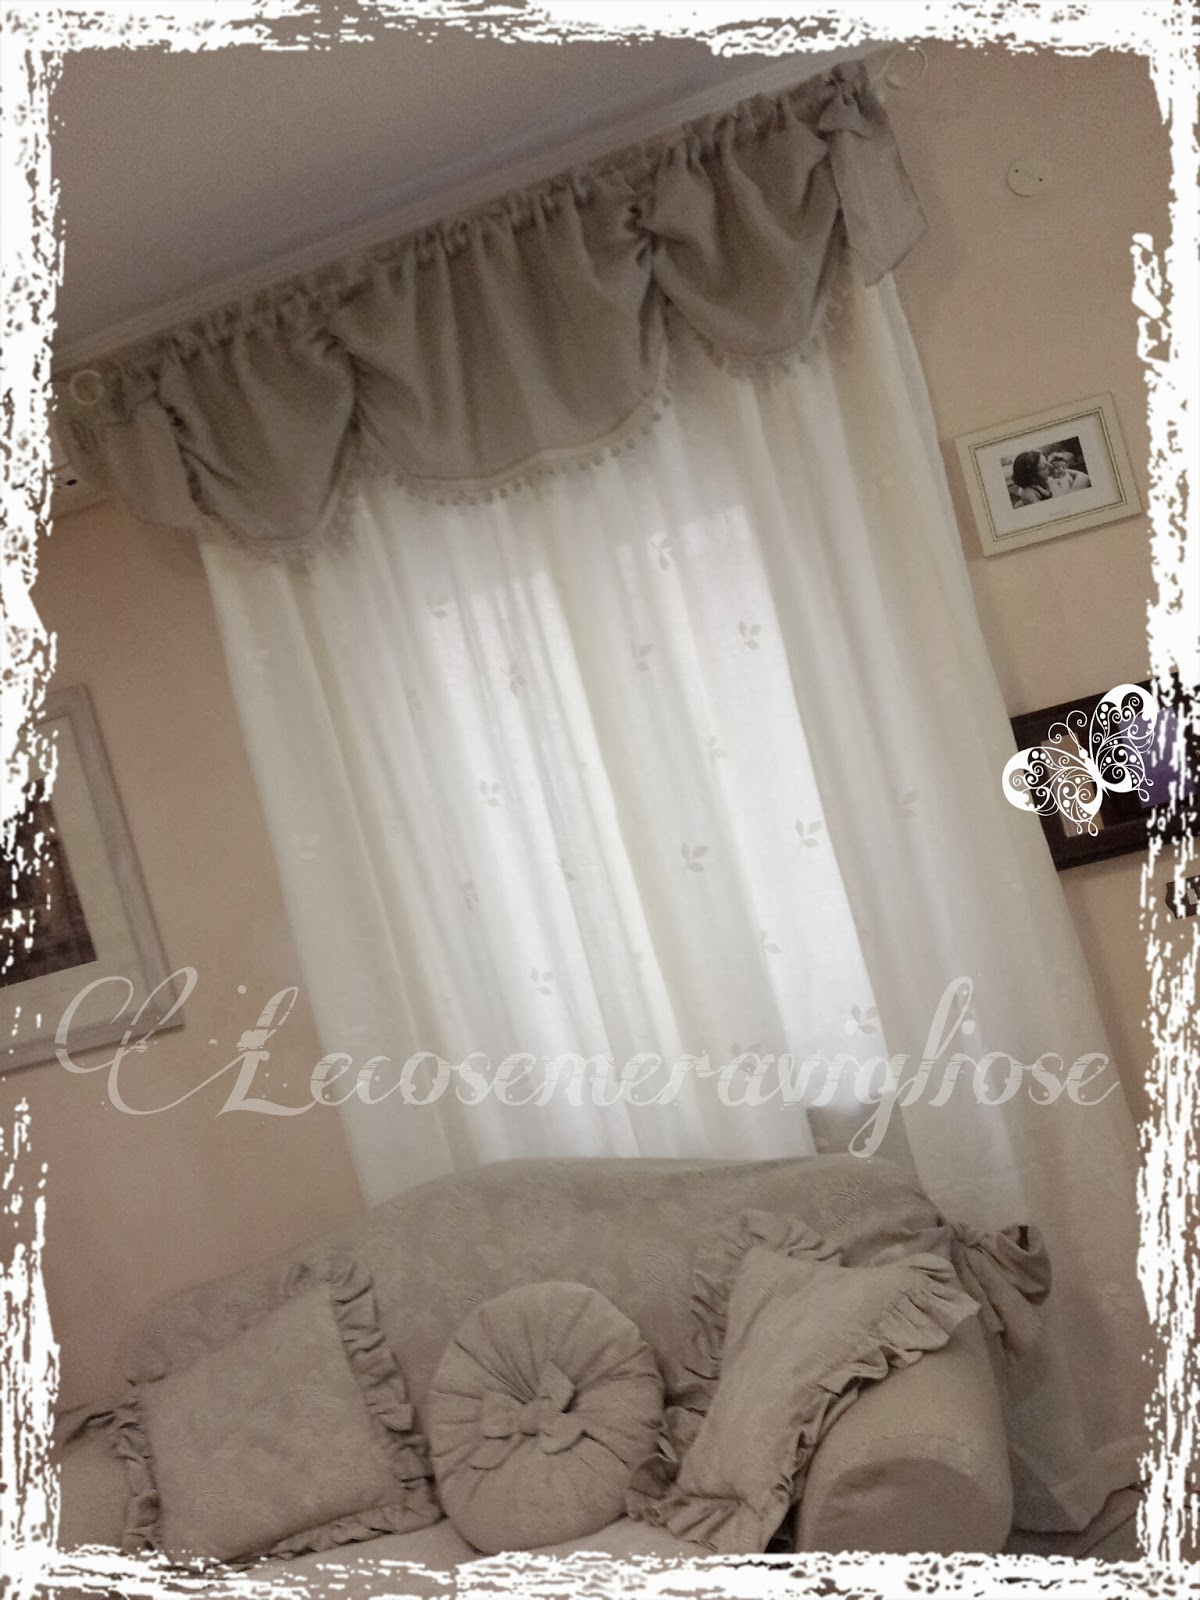 lecosemeravigliose shabby e country chic passions tende